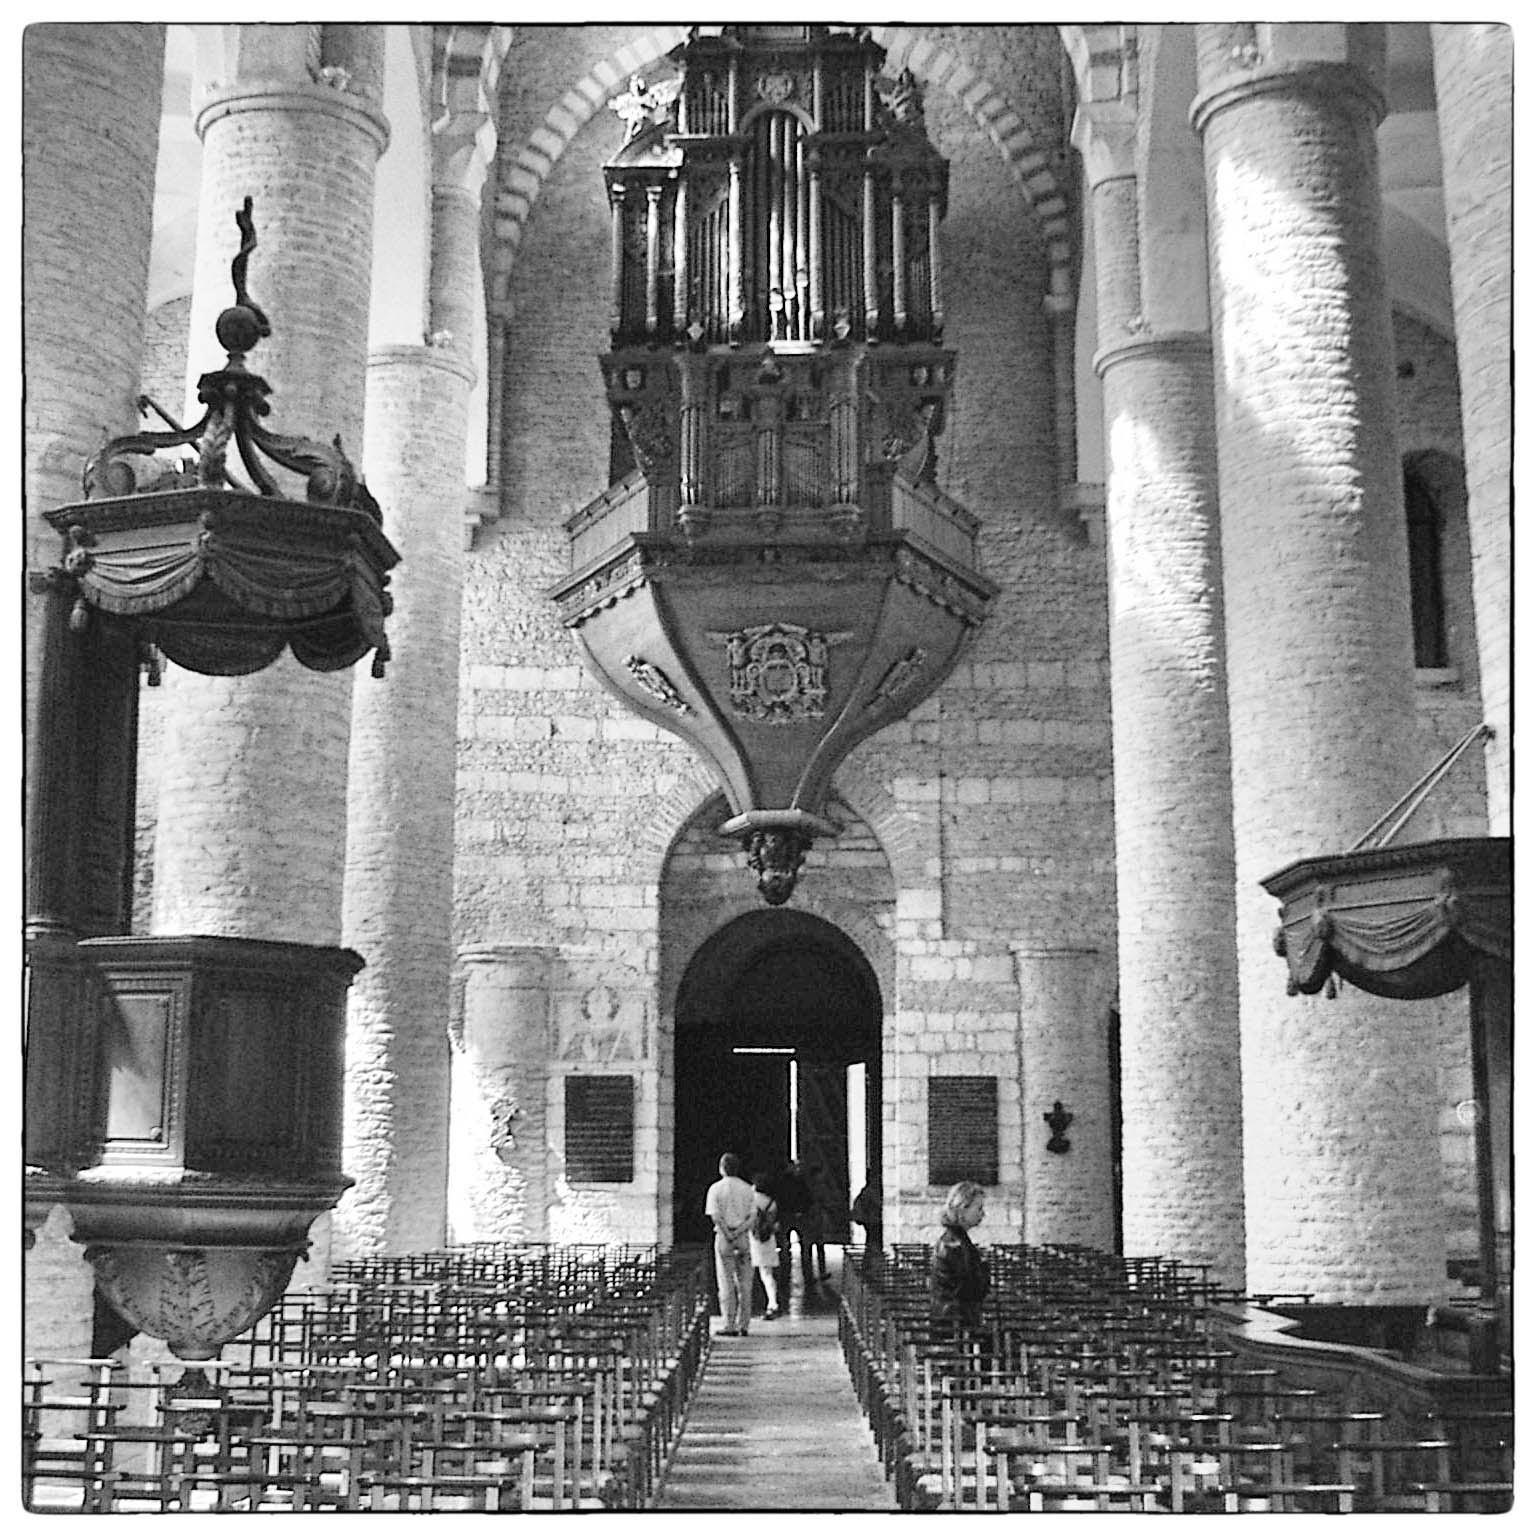 PHOTOGRAPHIER LA BASILIQUE DE TOURNUS